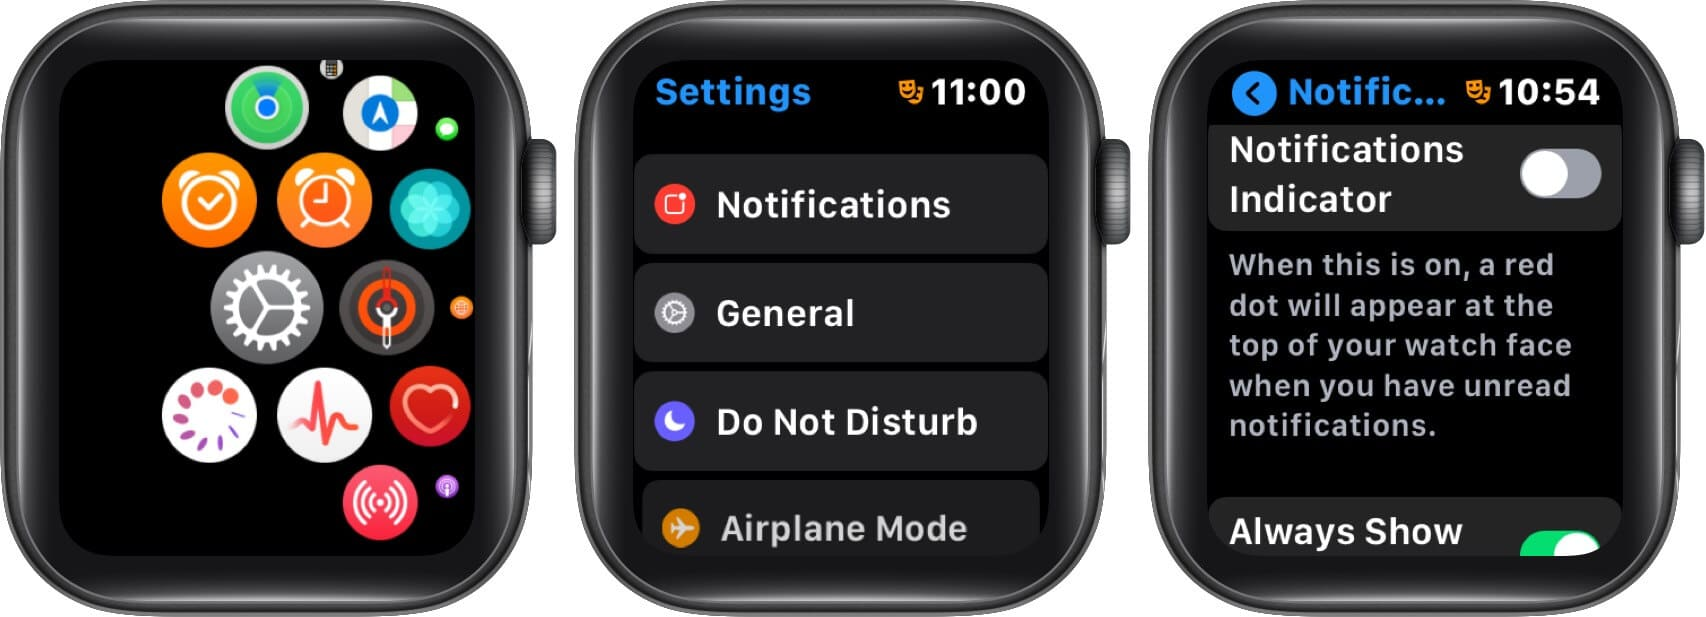 turn off notifications to remove red dot on apple watch